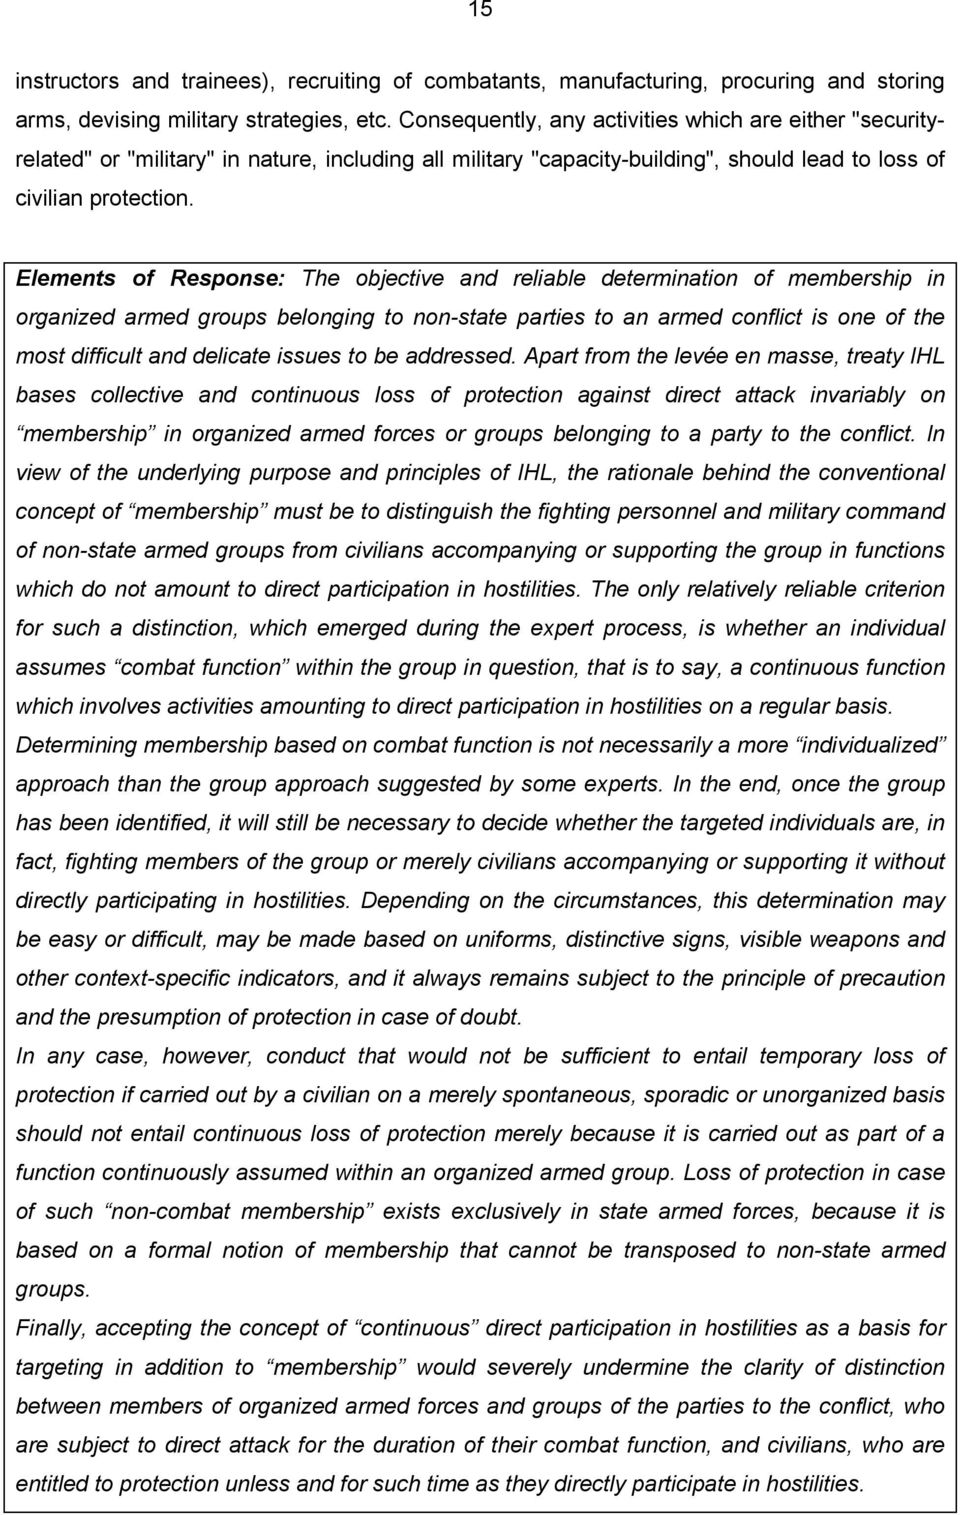 Elements of Response: The objective and reliable determination of membership in organized armed groups belonging to non-state parties to an armed conflict is one of the most difficult and delicate